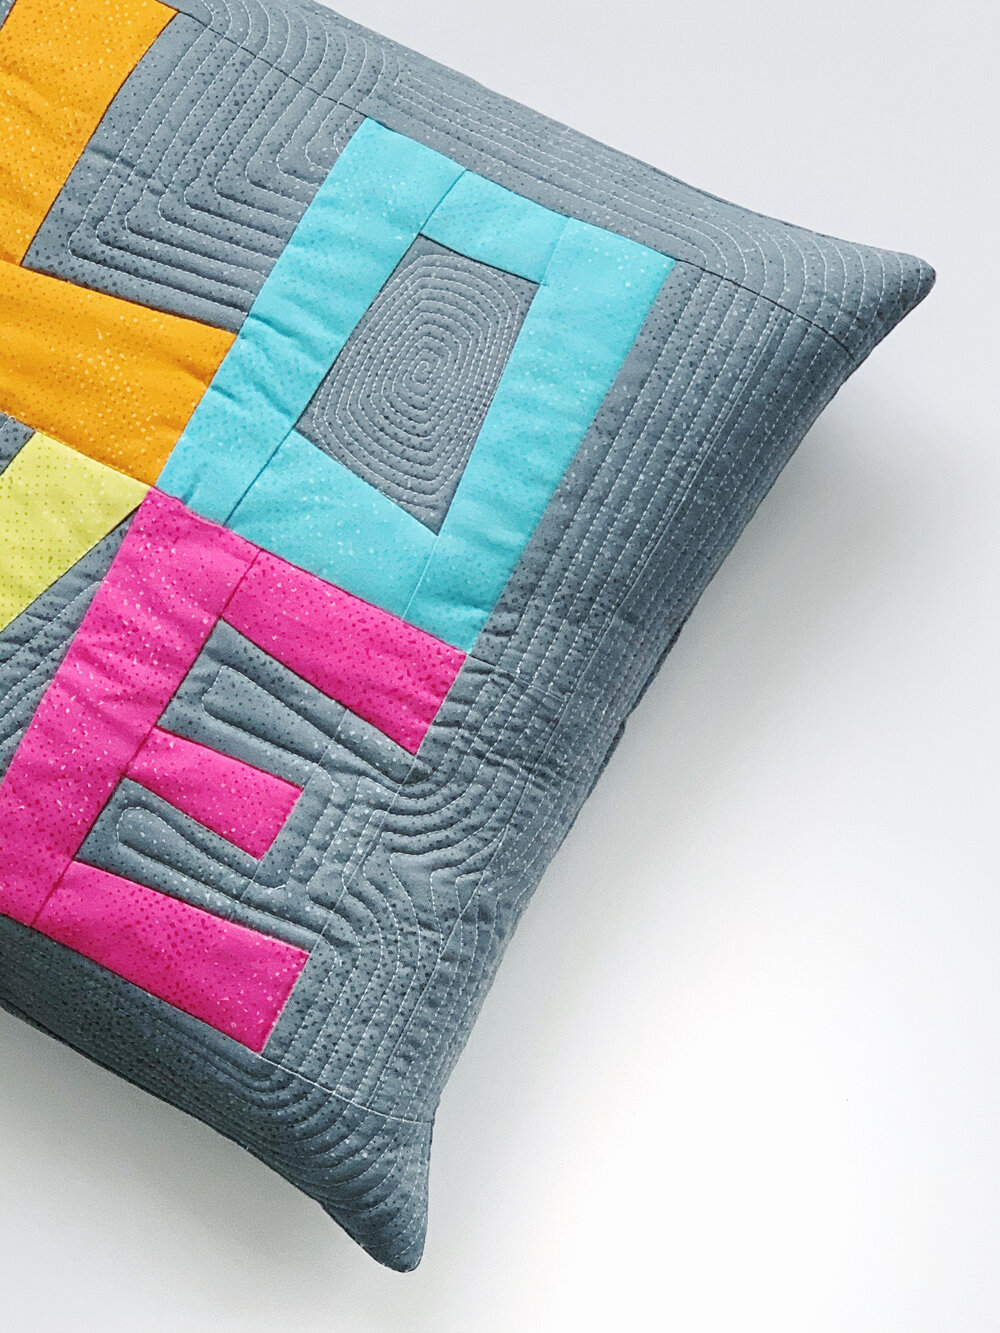 """12"""" block size… - Let's take a look at the larger version of this block with this 16"""" x 16"""" pillow. The block itself is 12"""" x 12"""", and is framed with a matching background color."""